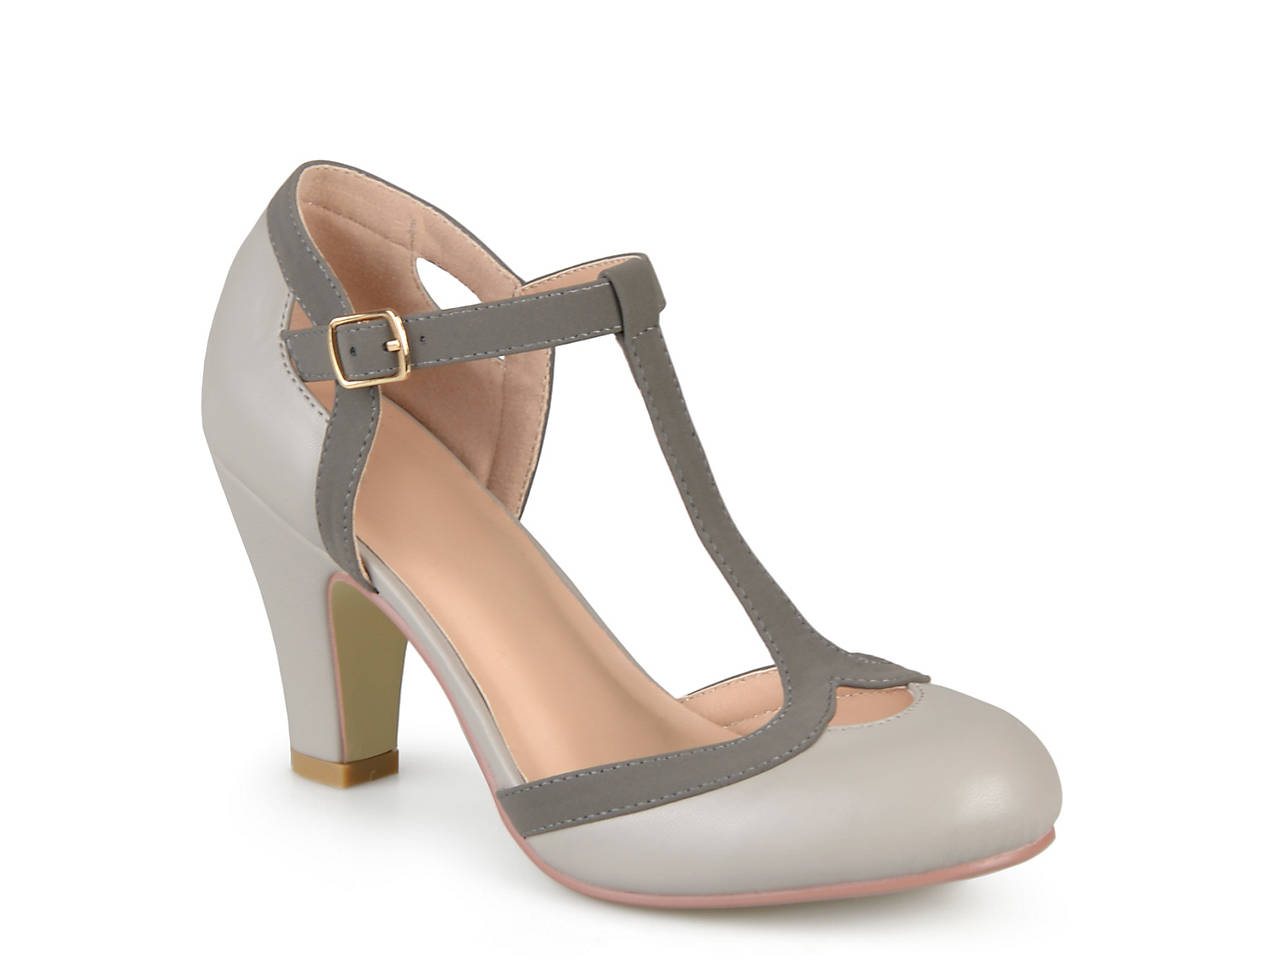 3cfc5c1f914 Journee Collection Olina Pump Women s Shoes